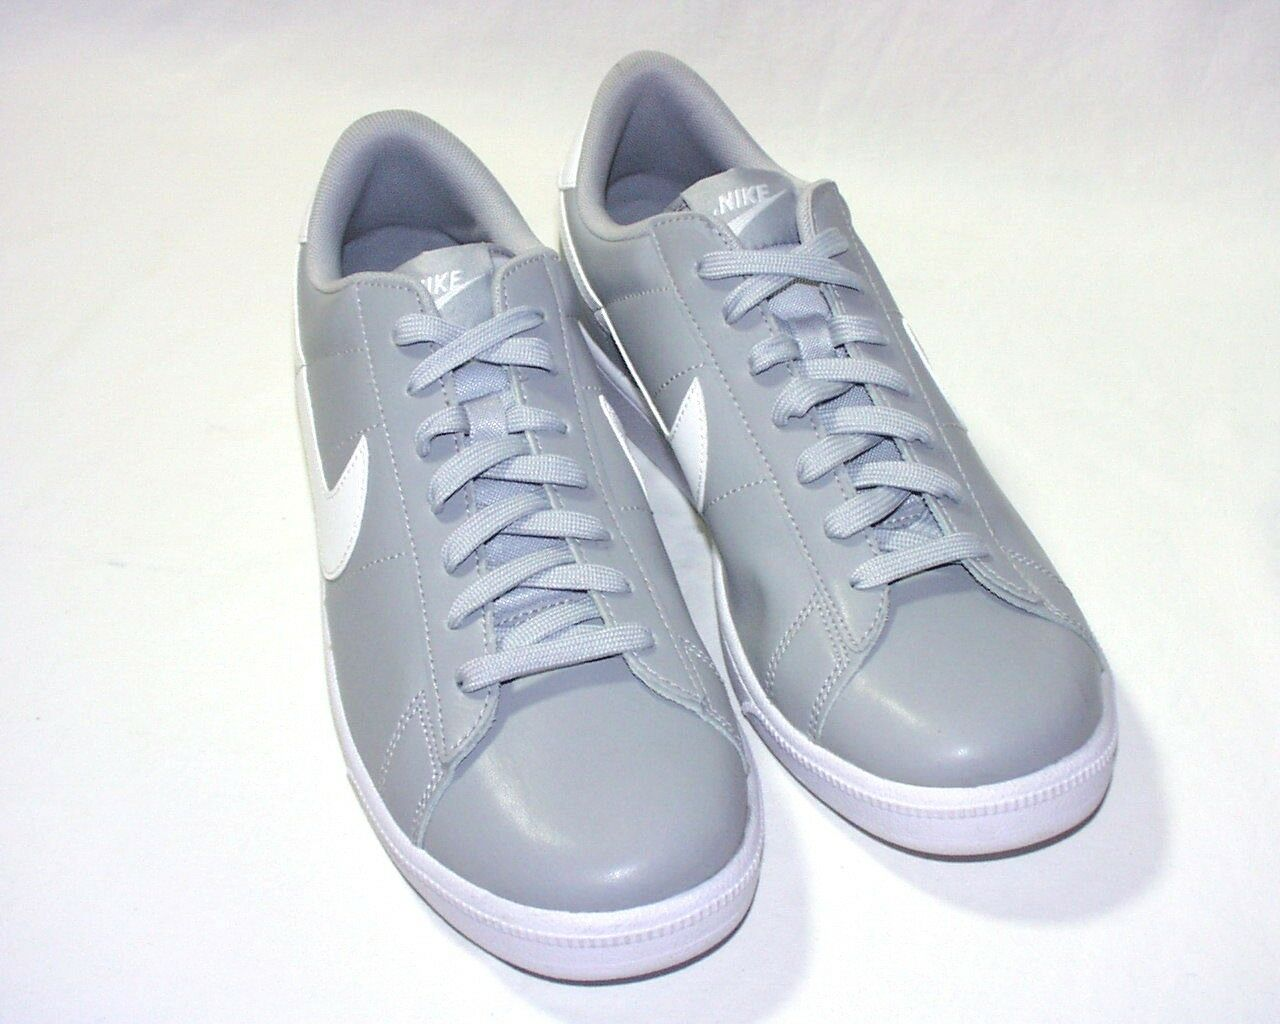 Nike Tennis Classic CS Men's Shoes 683613, Leather Upper, New Wild casual shoes